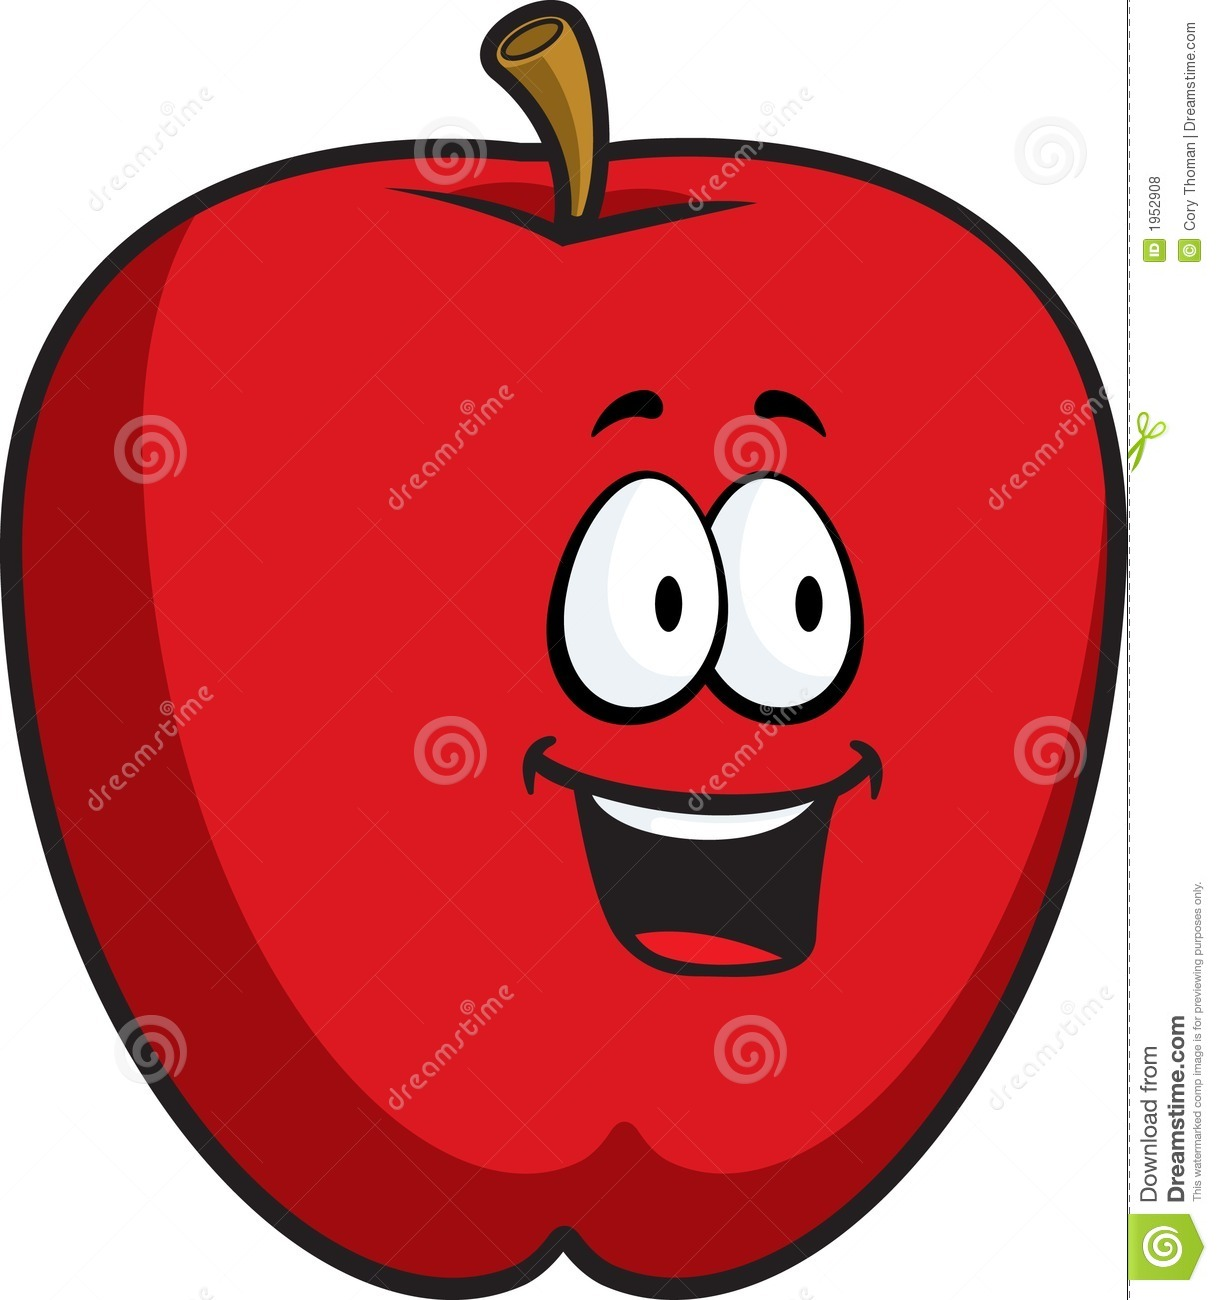 free smiling apple clipart - photo #27